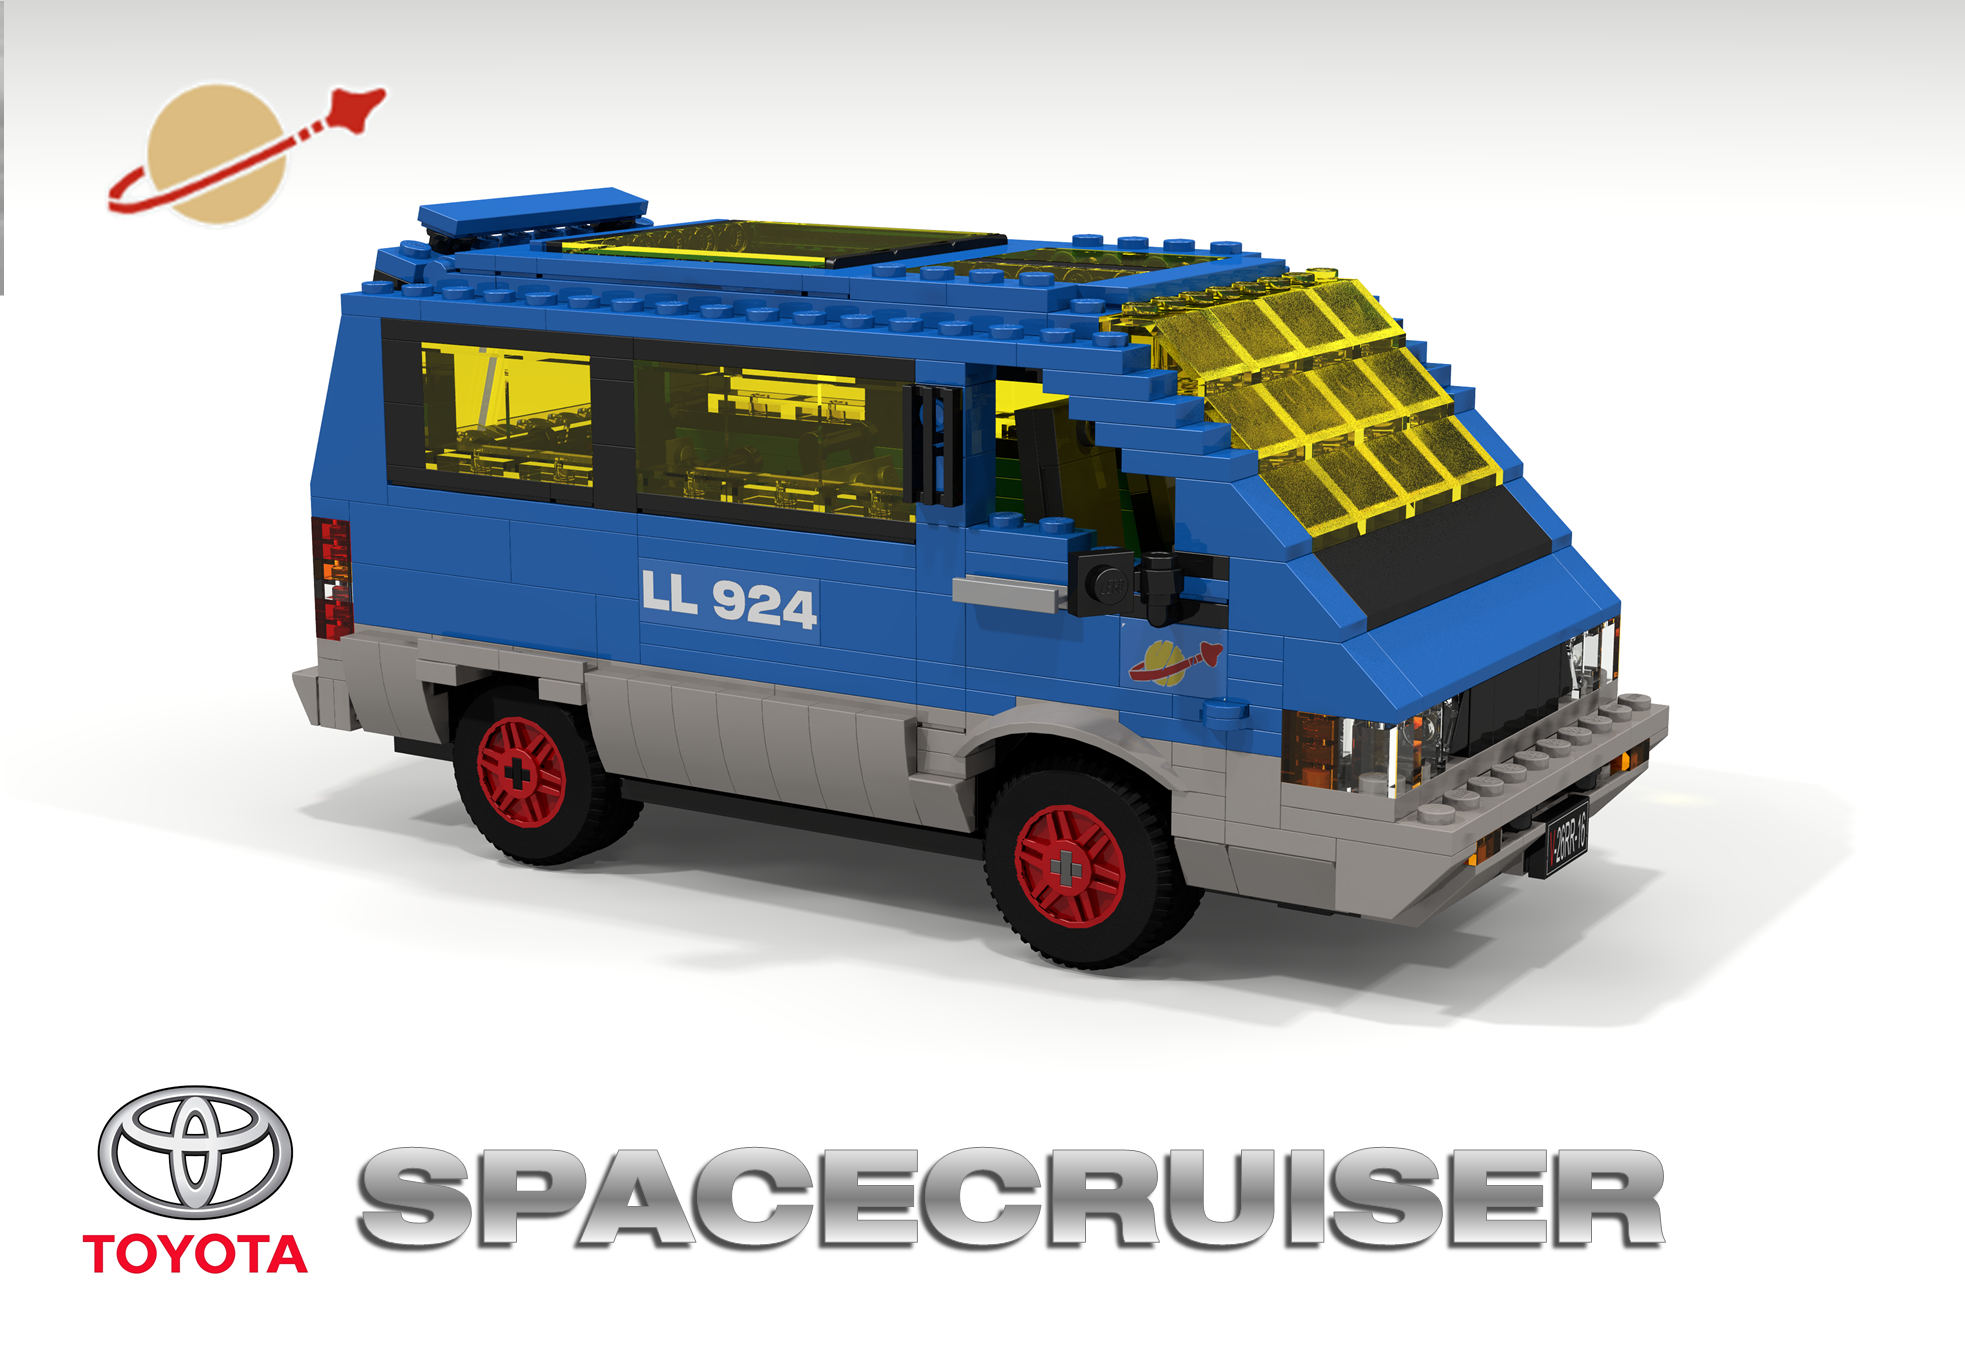 toyota_spacecruiser_ll924_01.png